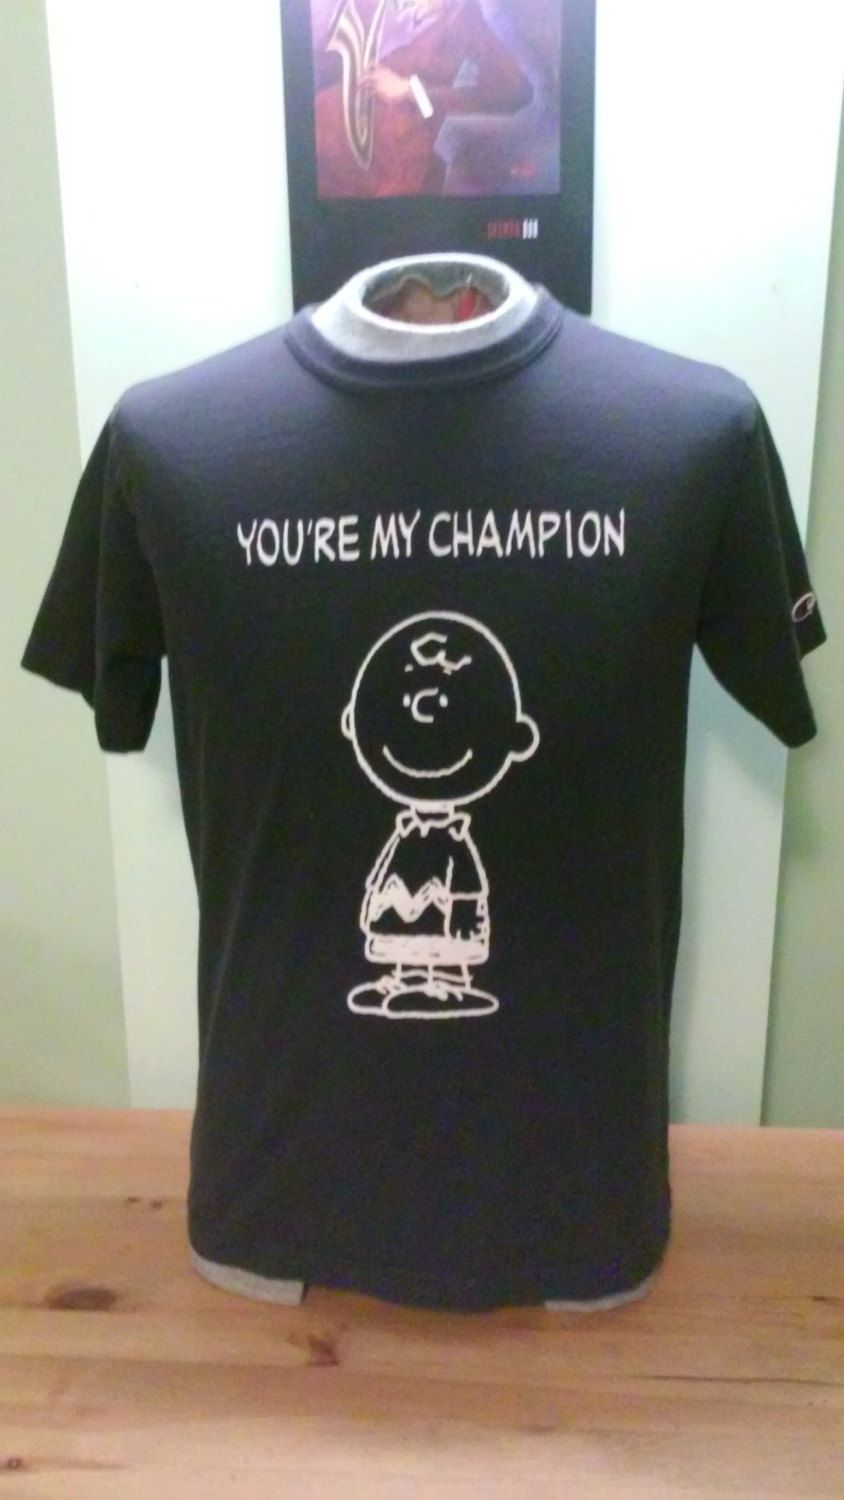 Vintage Charlie Brown Champion Unisex T-Shirt by VintageMixWest on Etsy